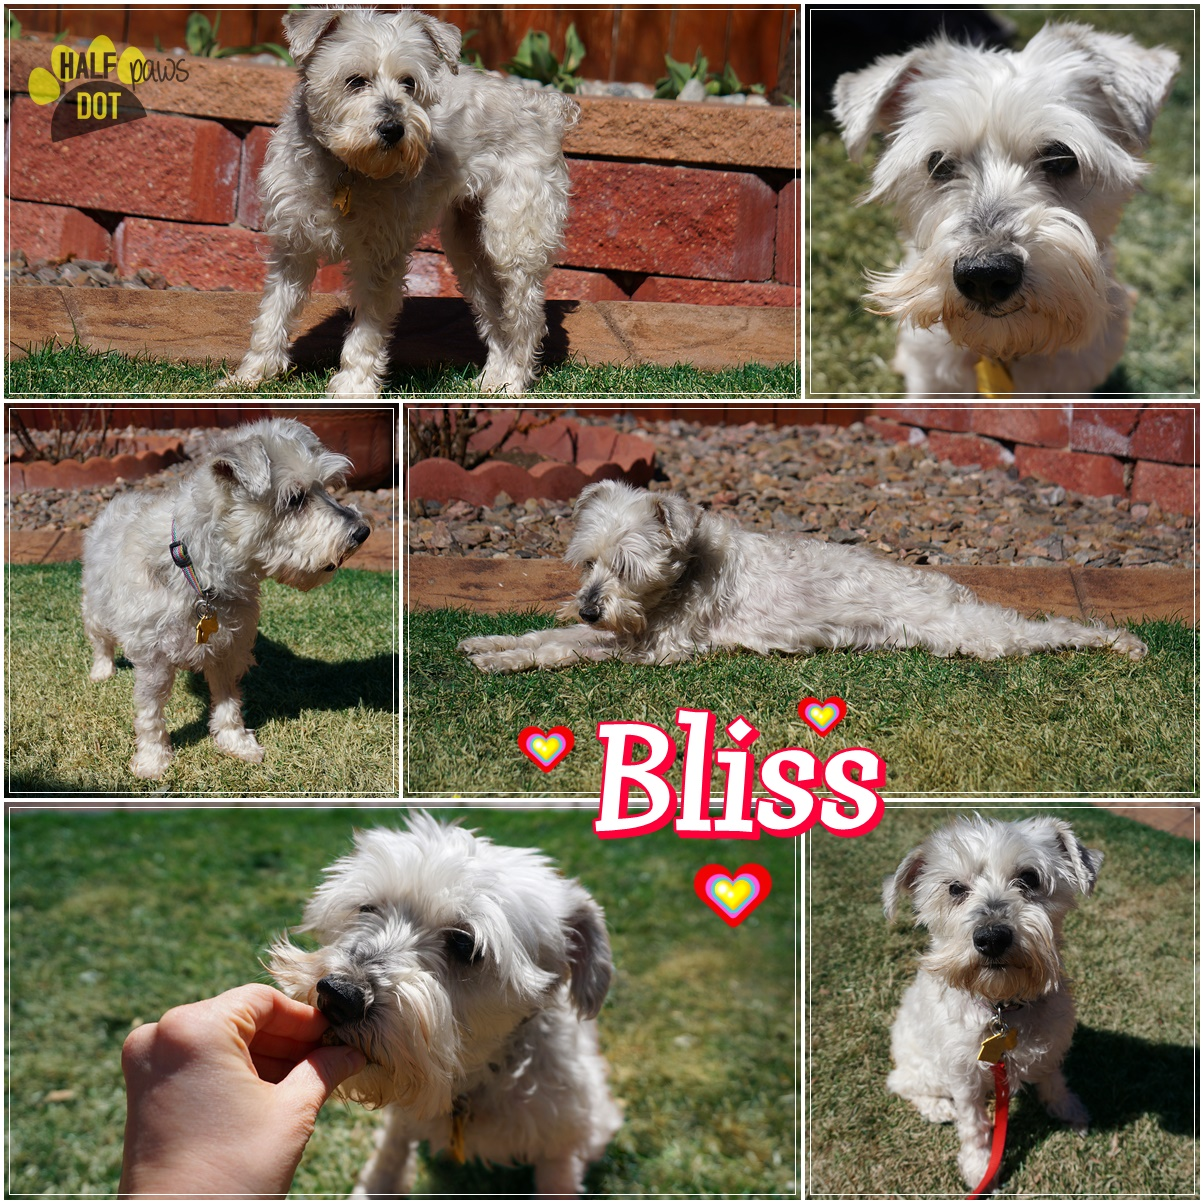 Adopt Bliss: A young, playful lover